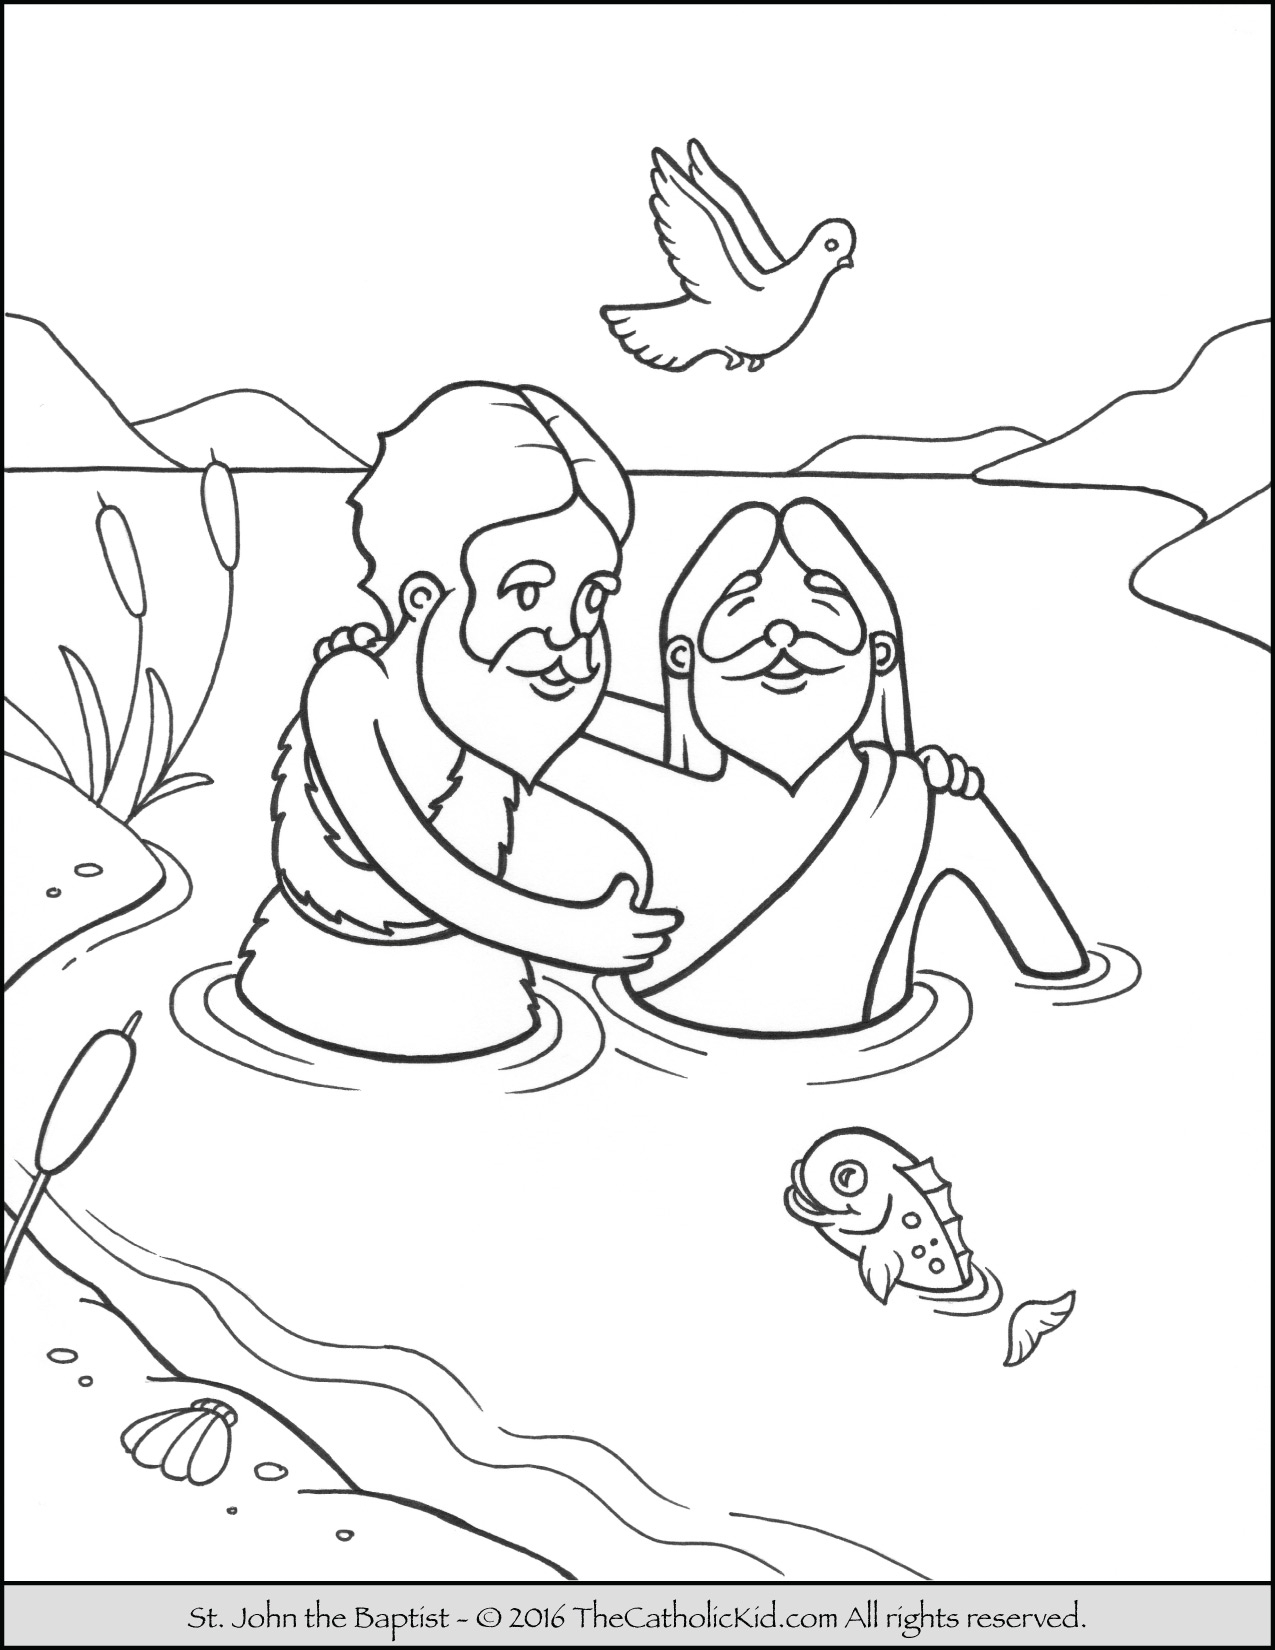 john the baptist coloring page - saint john the baptist coloring pages